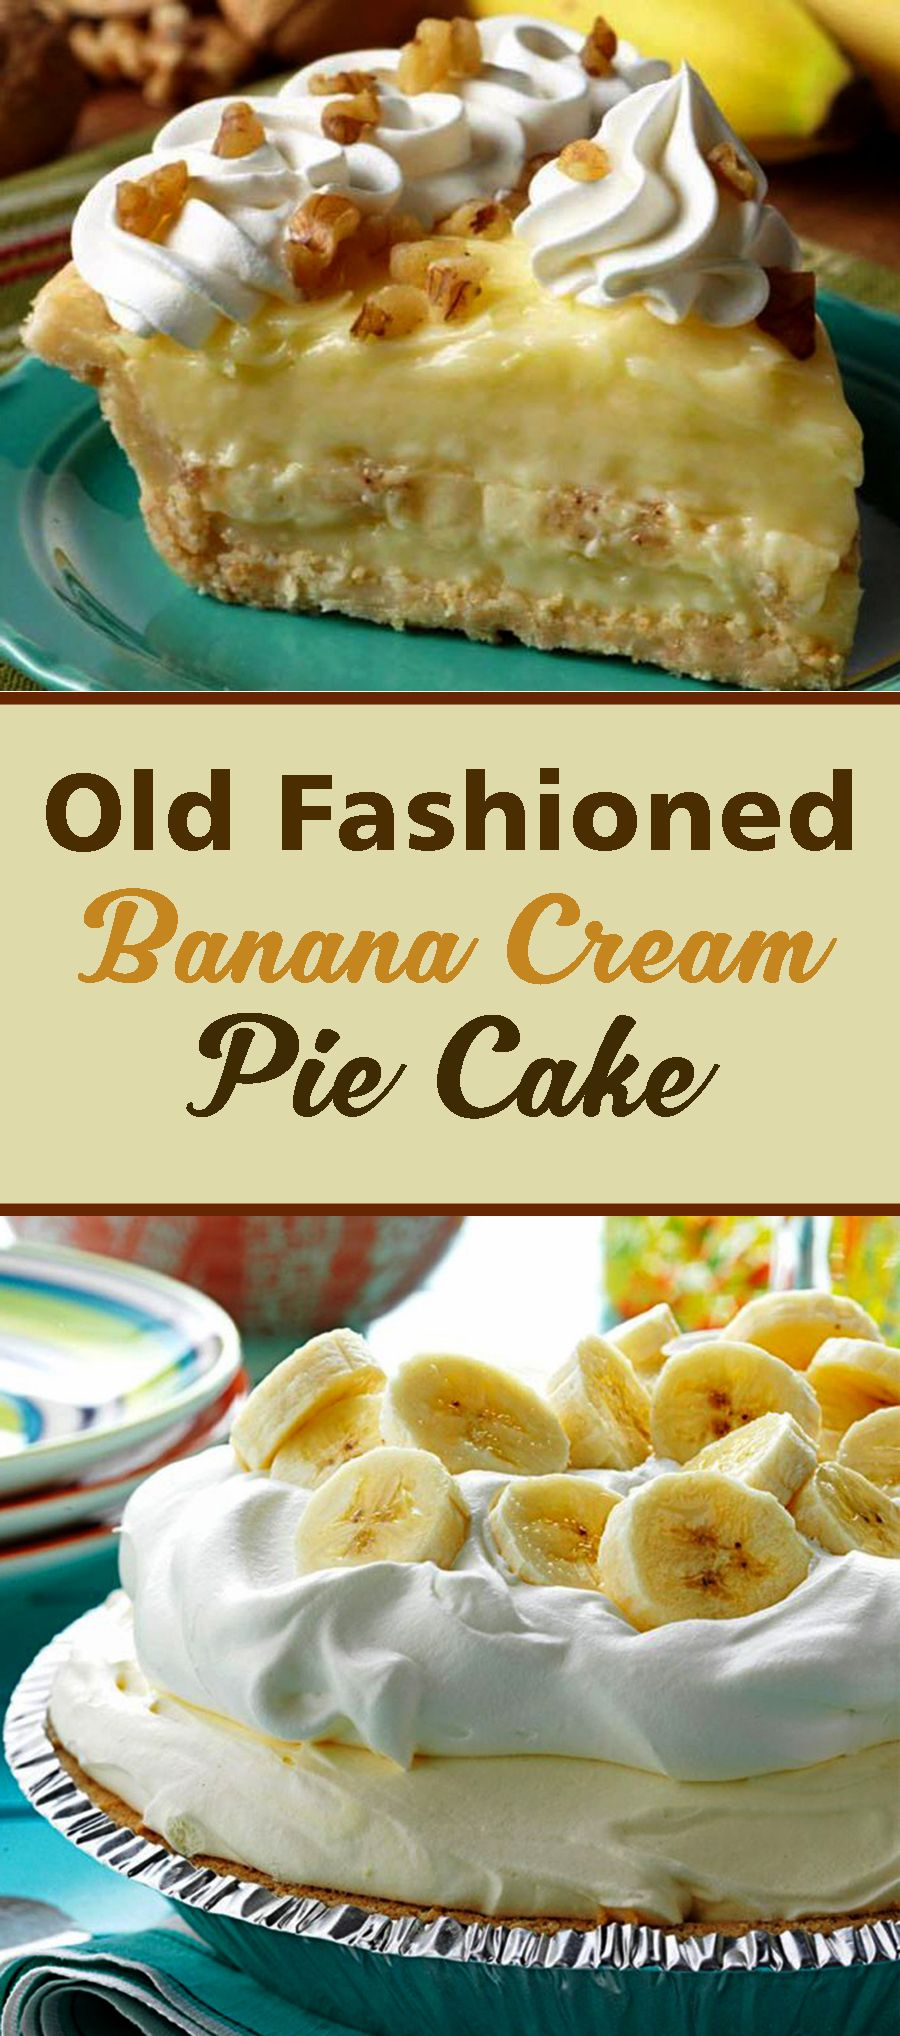 Old Fashioned Banana Cream Pie Cake #bananapie